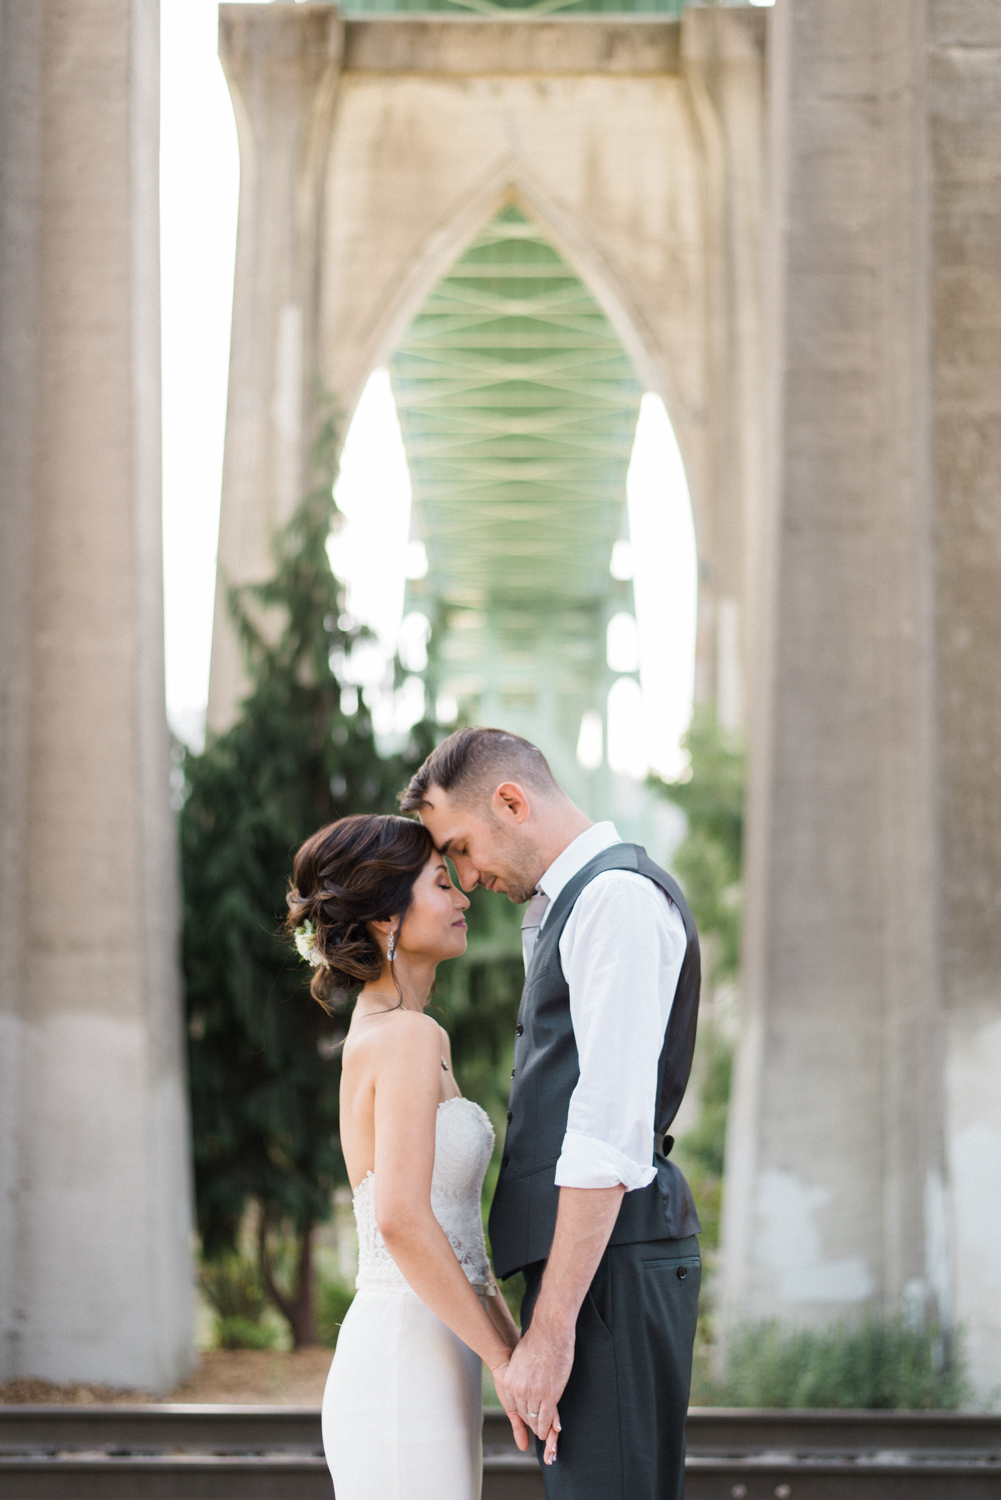 cathedral-park-wedding-st-johns-bridge-portland-shelley-marie-photo-3.jpg